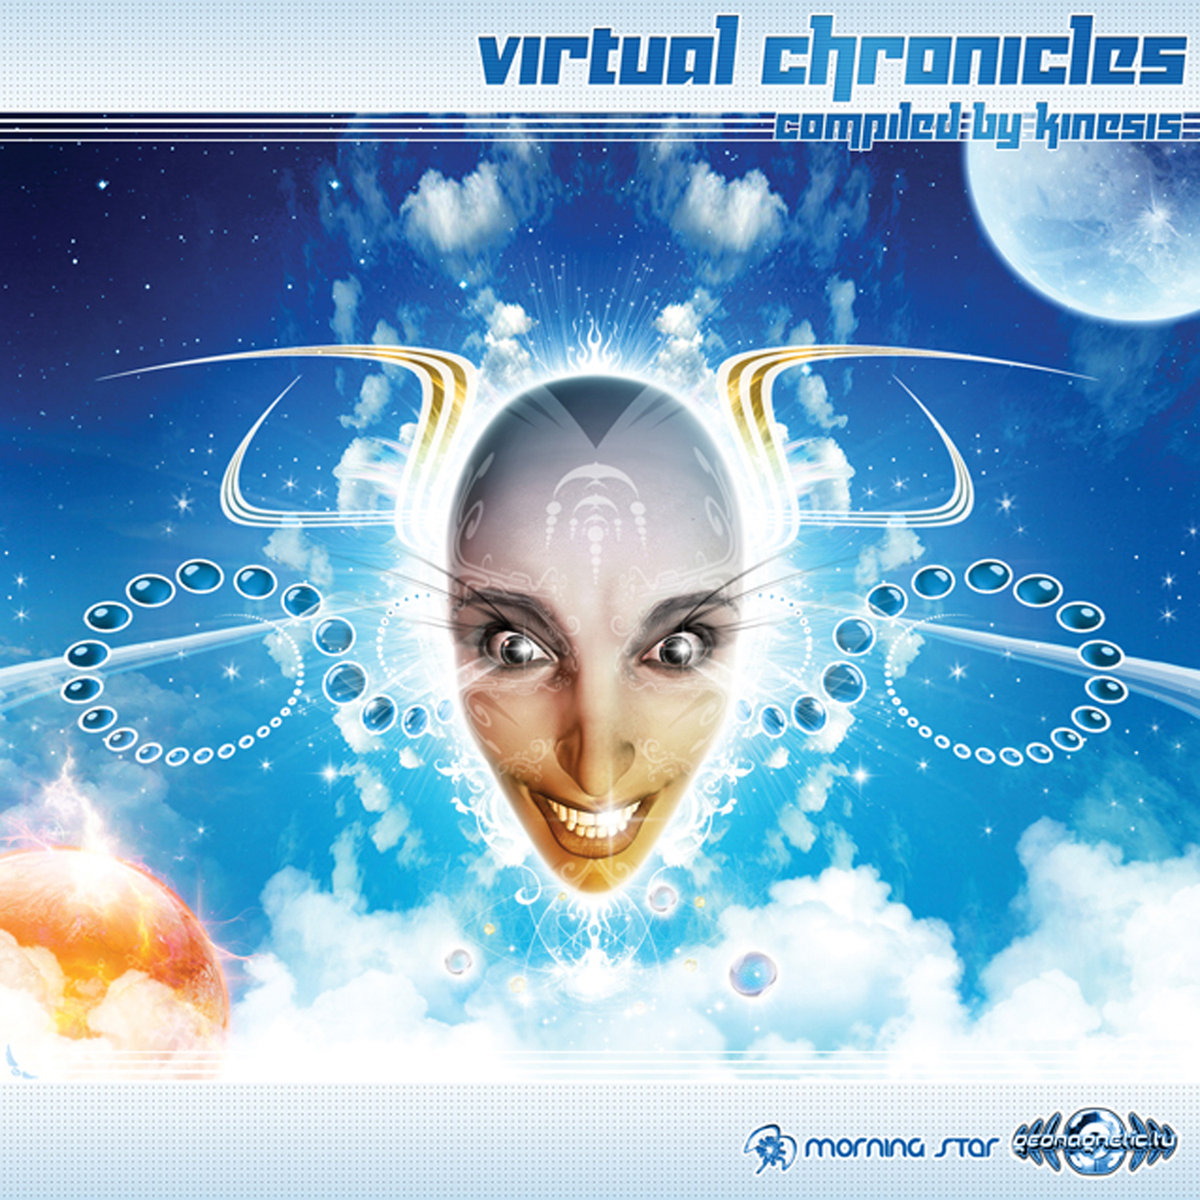 Kinesis vs. Audiobrain - Defending Freedom @ 'Various Artists - Virtual Chronicles (Compiled by Kinesis)' album (electronic, goa)